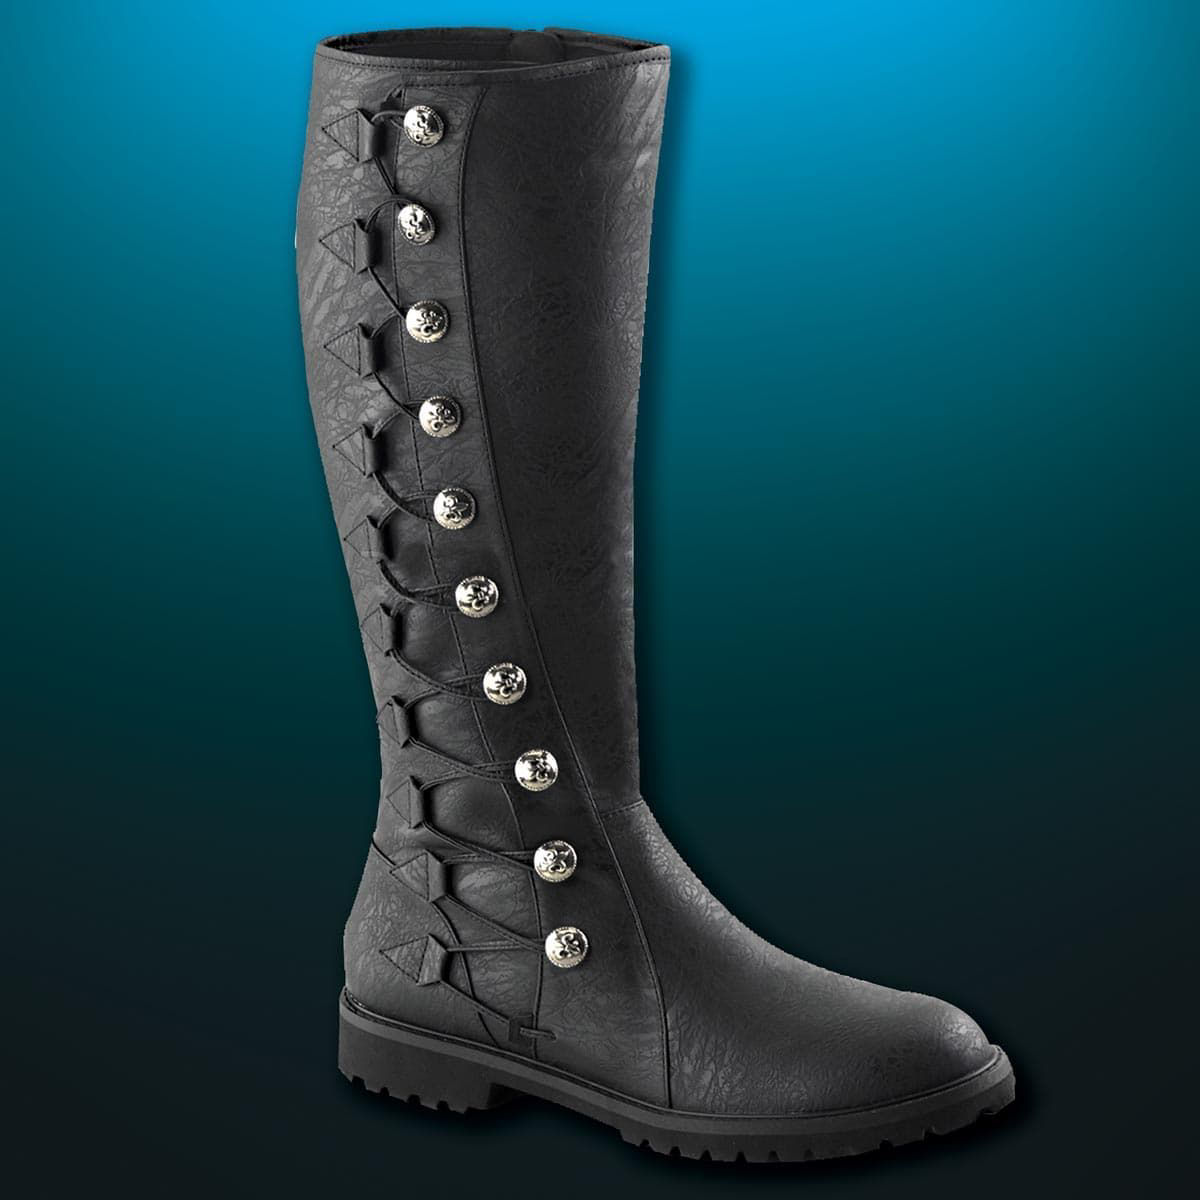 faux leather Renaissance boots with thick rubber anti-skid soles, buttons and lacing with small hidden zipper